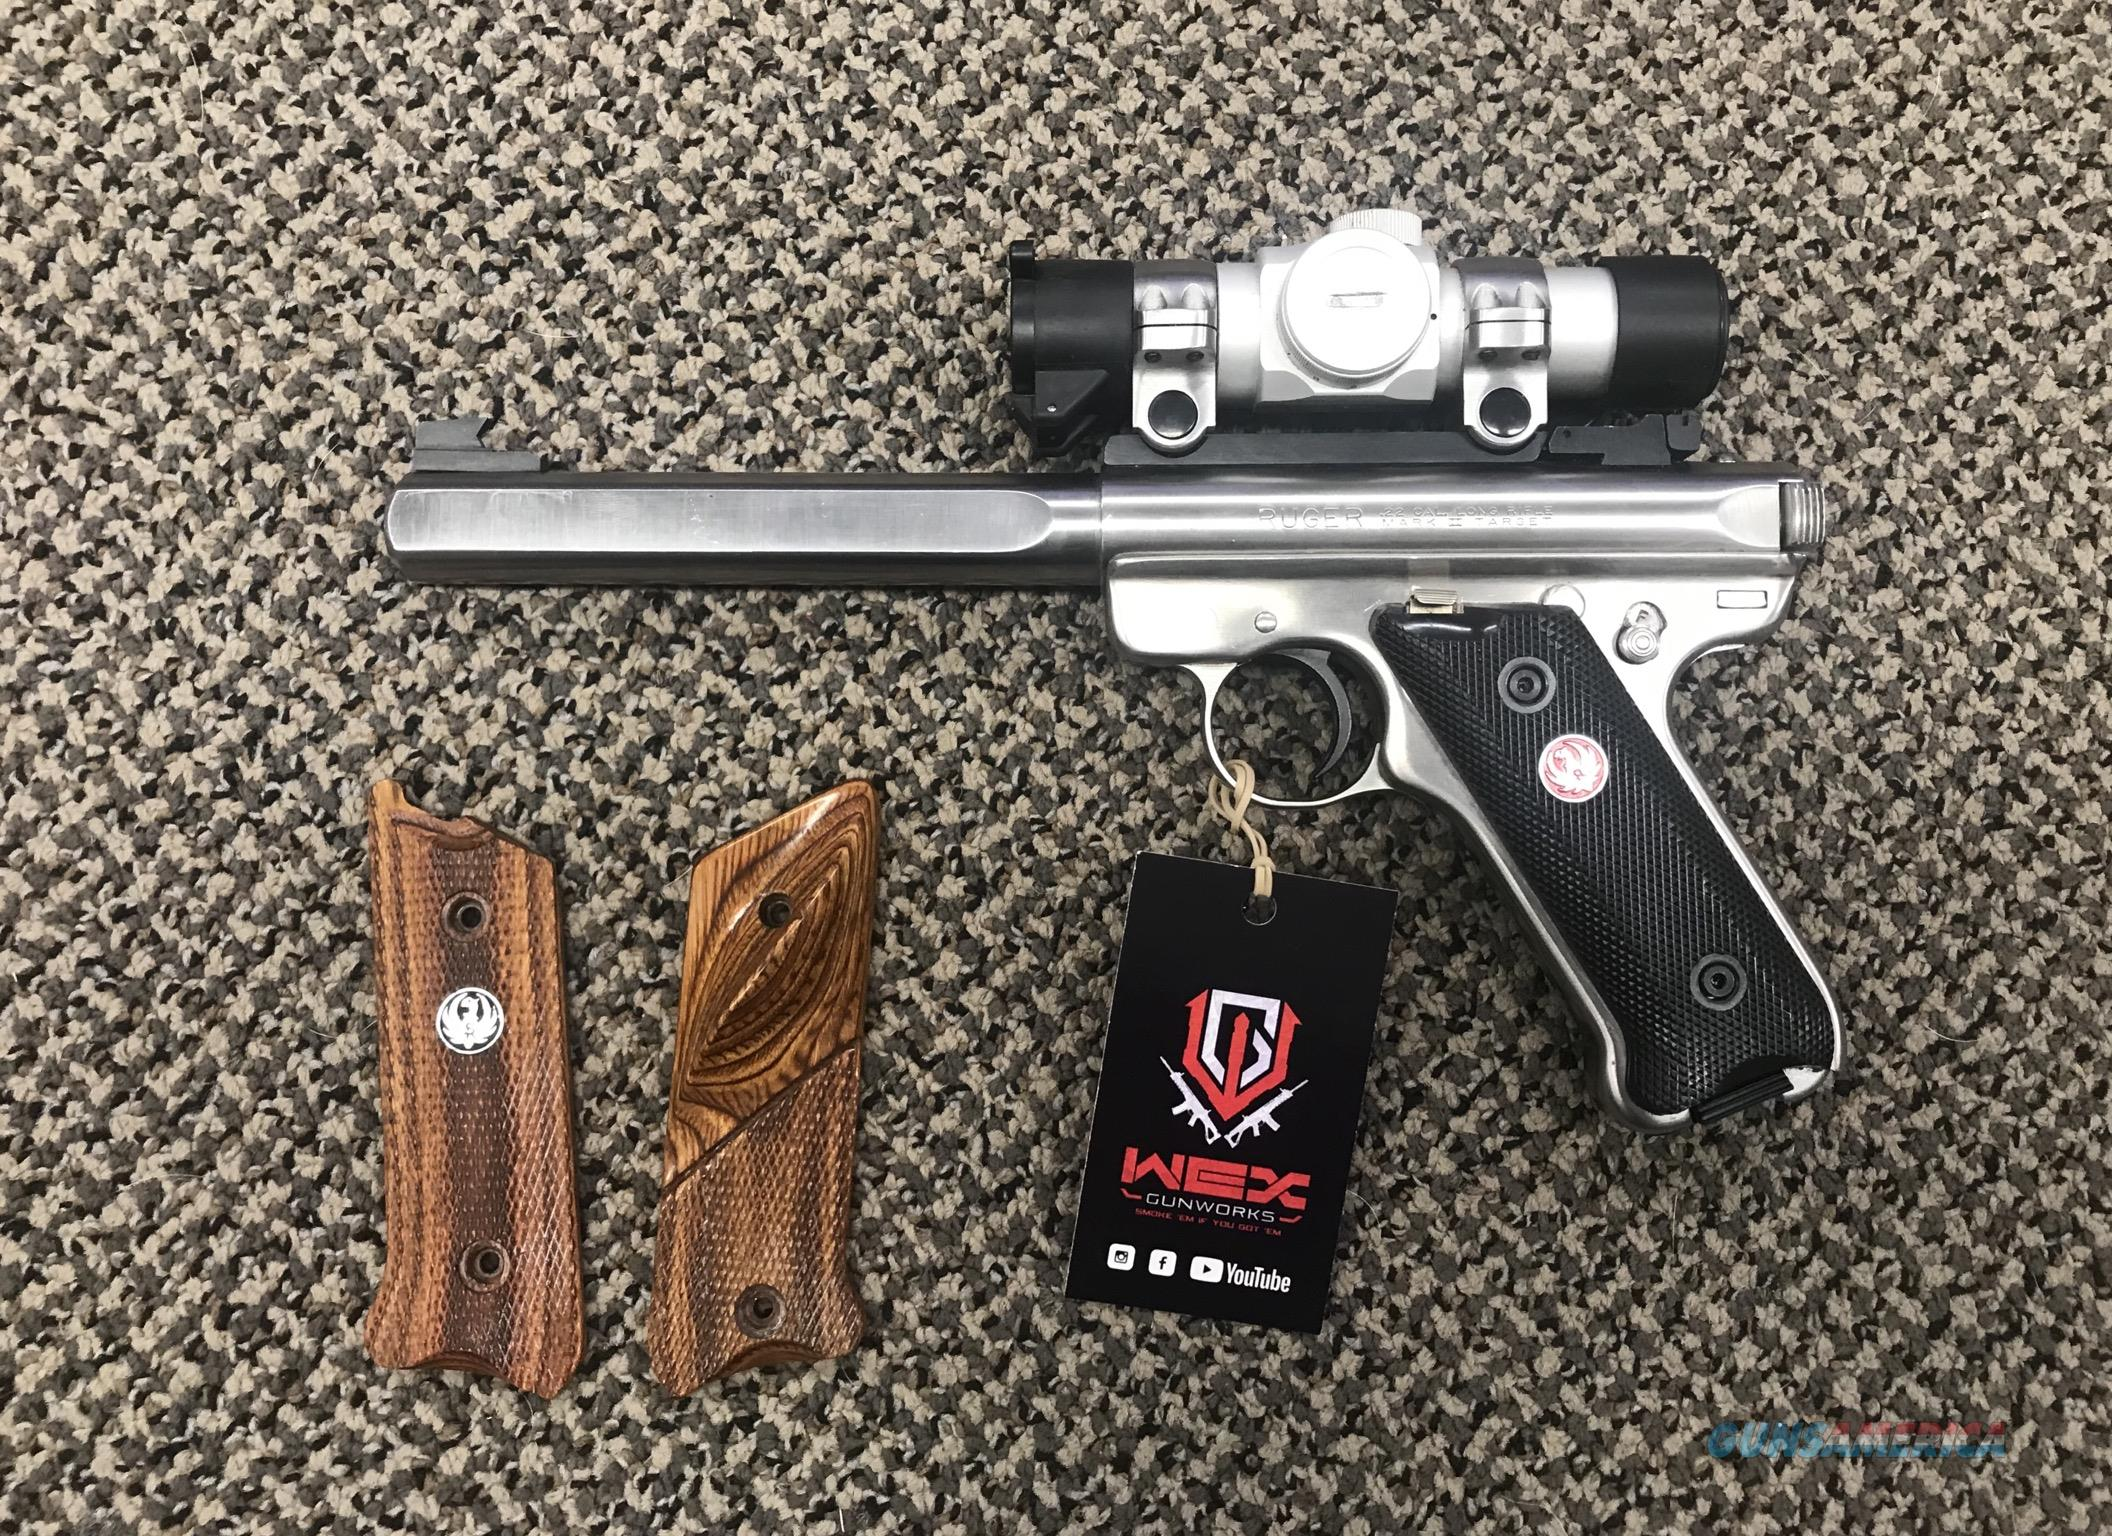 RUGER MARK II SLAB SIDE COMPETITION TARGET MODEL 6 7/8 INCH BBL  Guns > Pistols > Ruger Semi-Auto Pistols > Mark I/II/III/IV Family